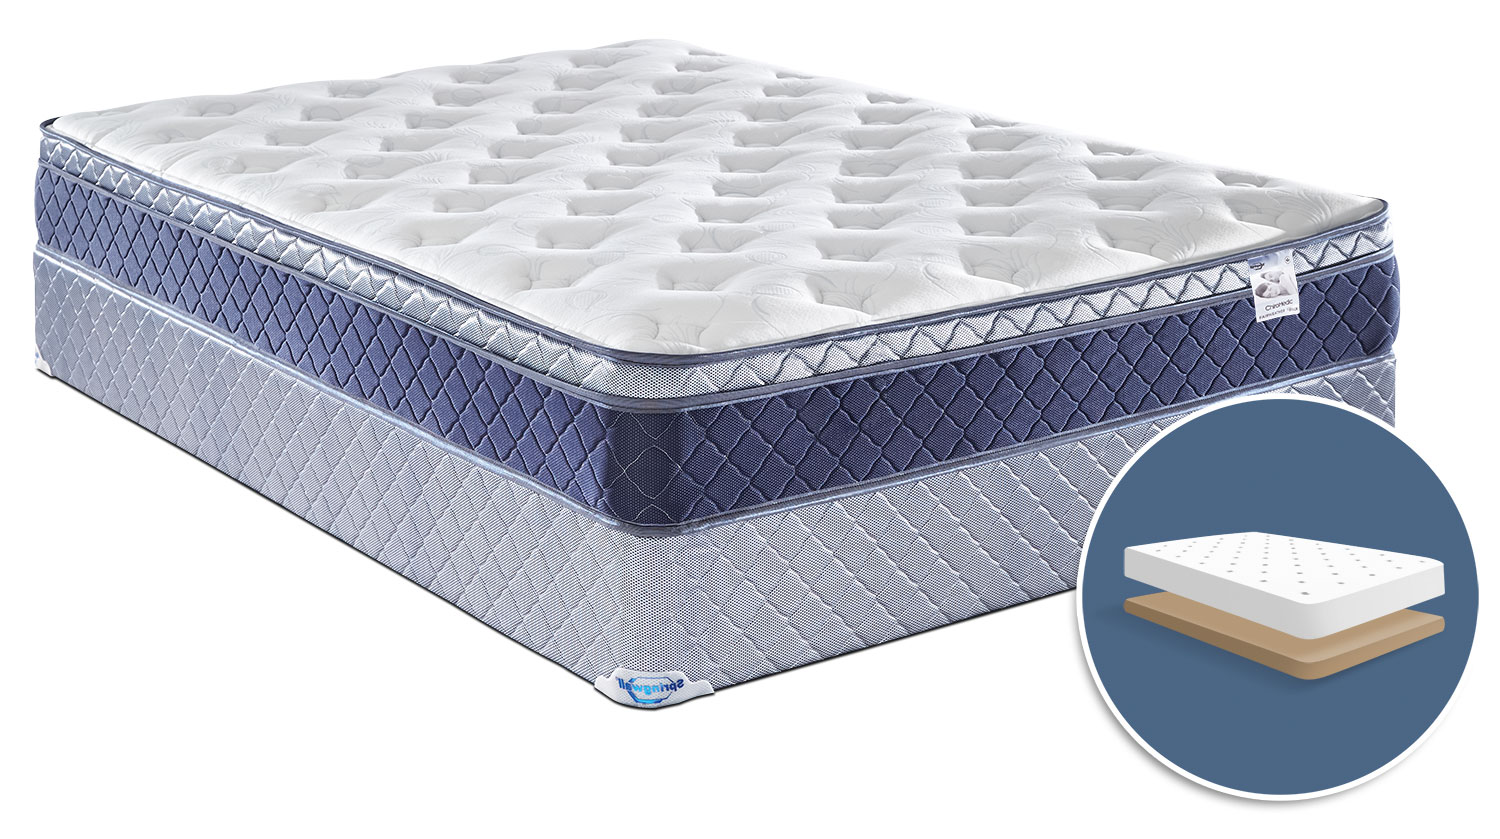 Mattresses and Bedding - Springwall Fairweather Euro-Top Plush Low-Profile Queen Mattress Set